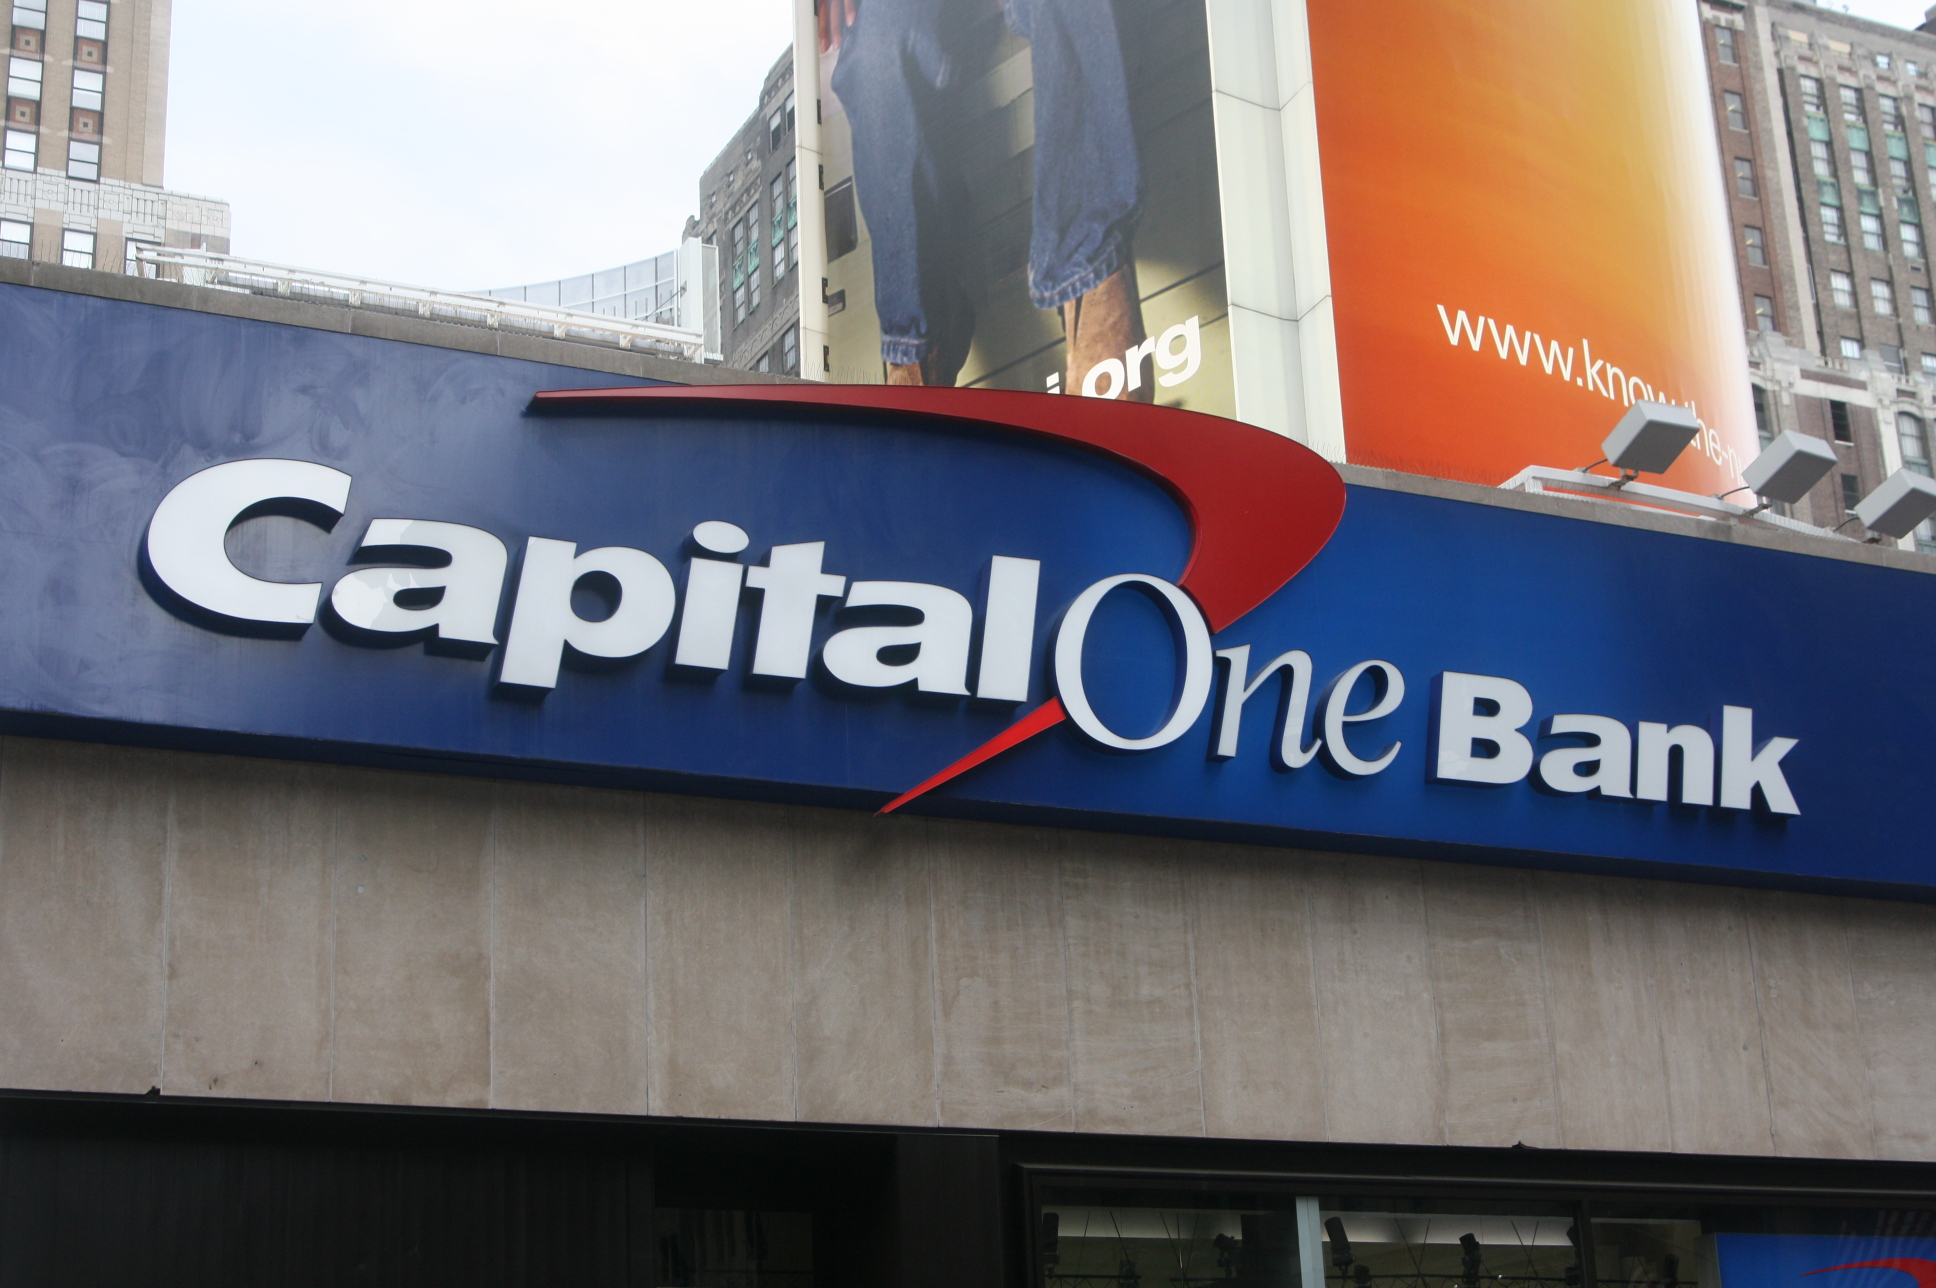 Capital one 360 cd certificate of deposit review should you open capital one 360 is the banking arm of well known credit card lender capital one it operates a country wide chain of banks and atms and offers online 1betcityfo Image collections